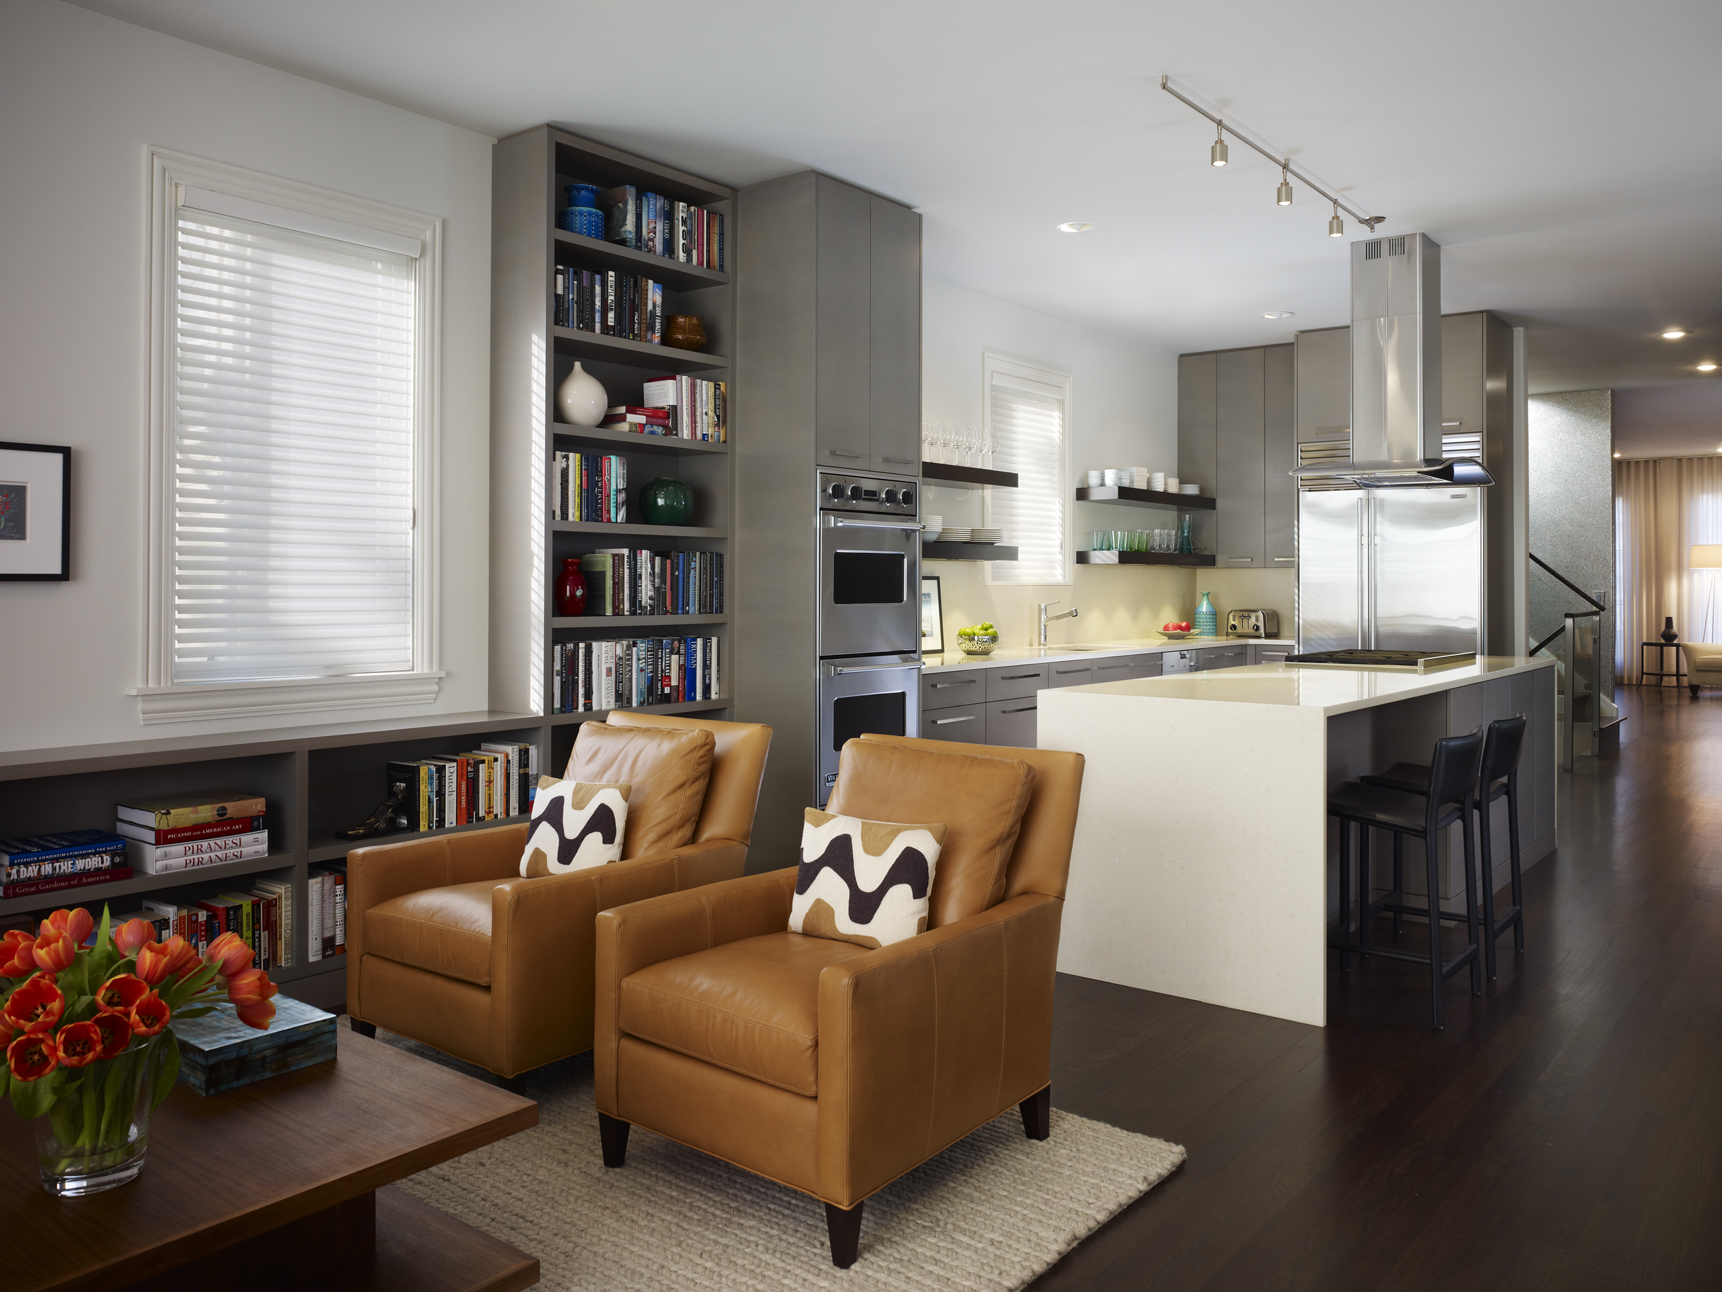 Modern Living Room With Kitchen Interior Design Modern Living Room Design Breaking With One Past And Recalling